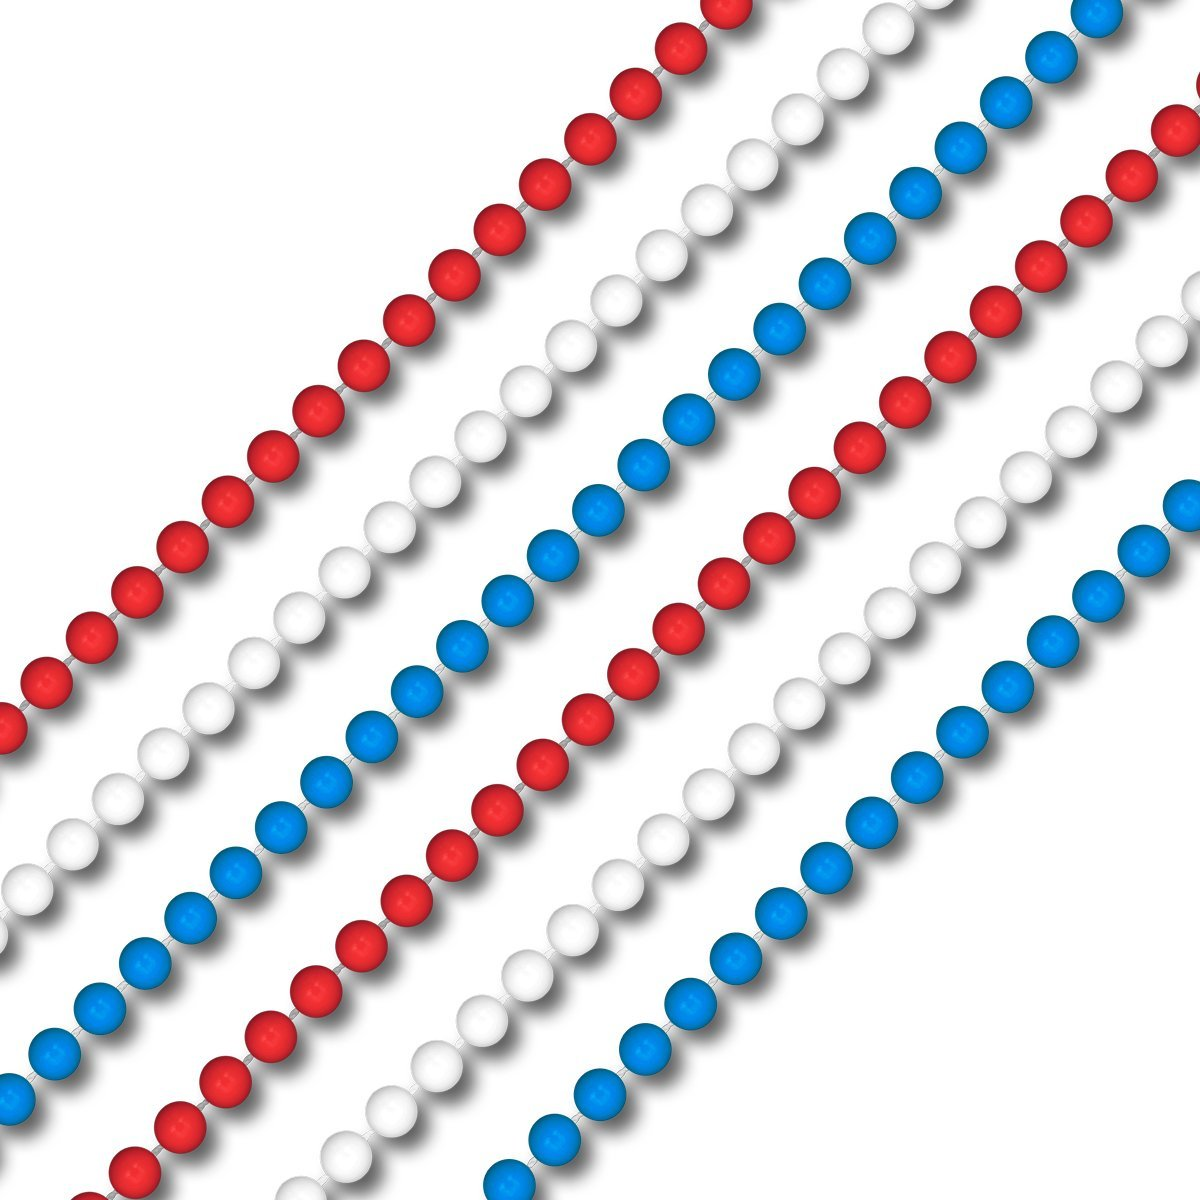 Smooth Round Opaque Bead Mardi Gras Necklace USA Red White and Blue Pack of 12 4th of July